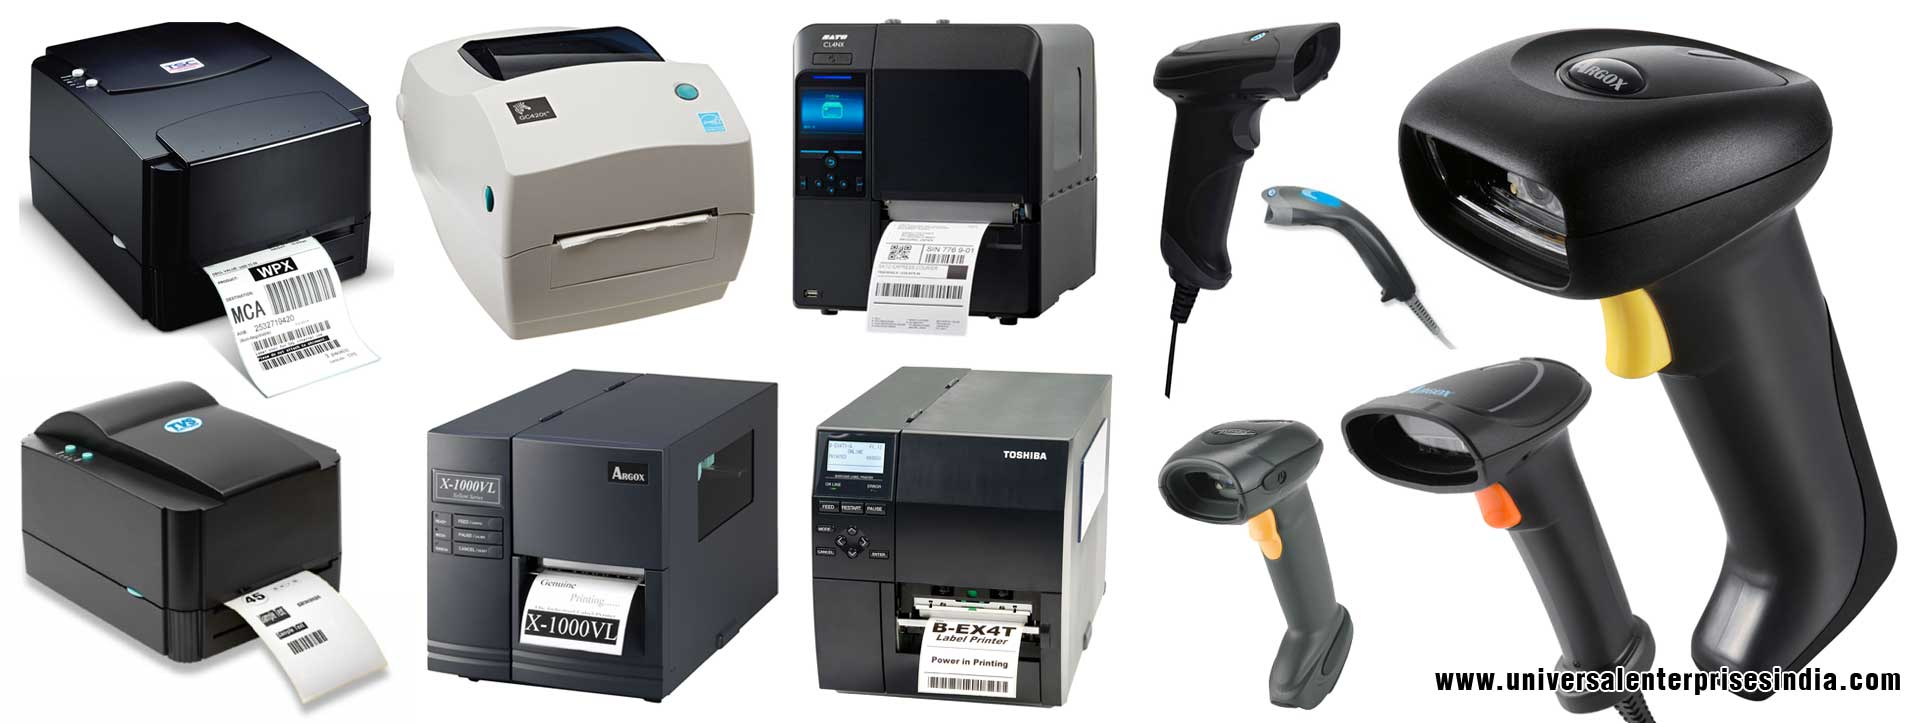 Barcode Printers Barcode Scanners TSC Zebra Argox TVS  Sato Toshiba Barcode Printers Scanners manufacturers suppliers dealers in ludhiana Punjab India